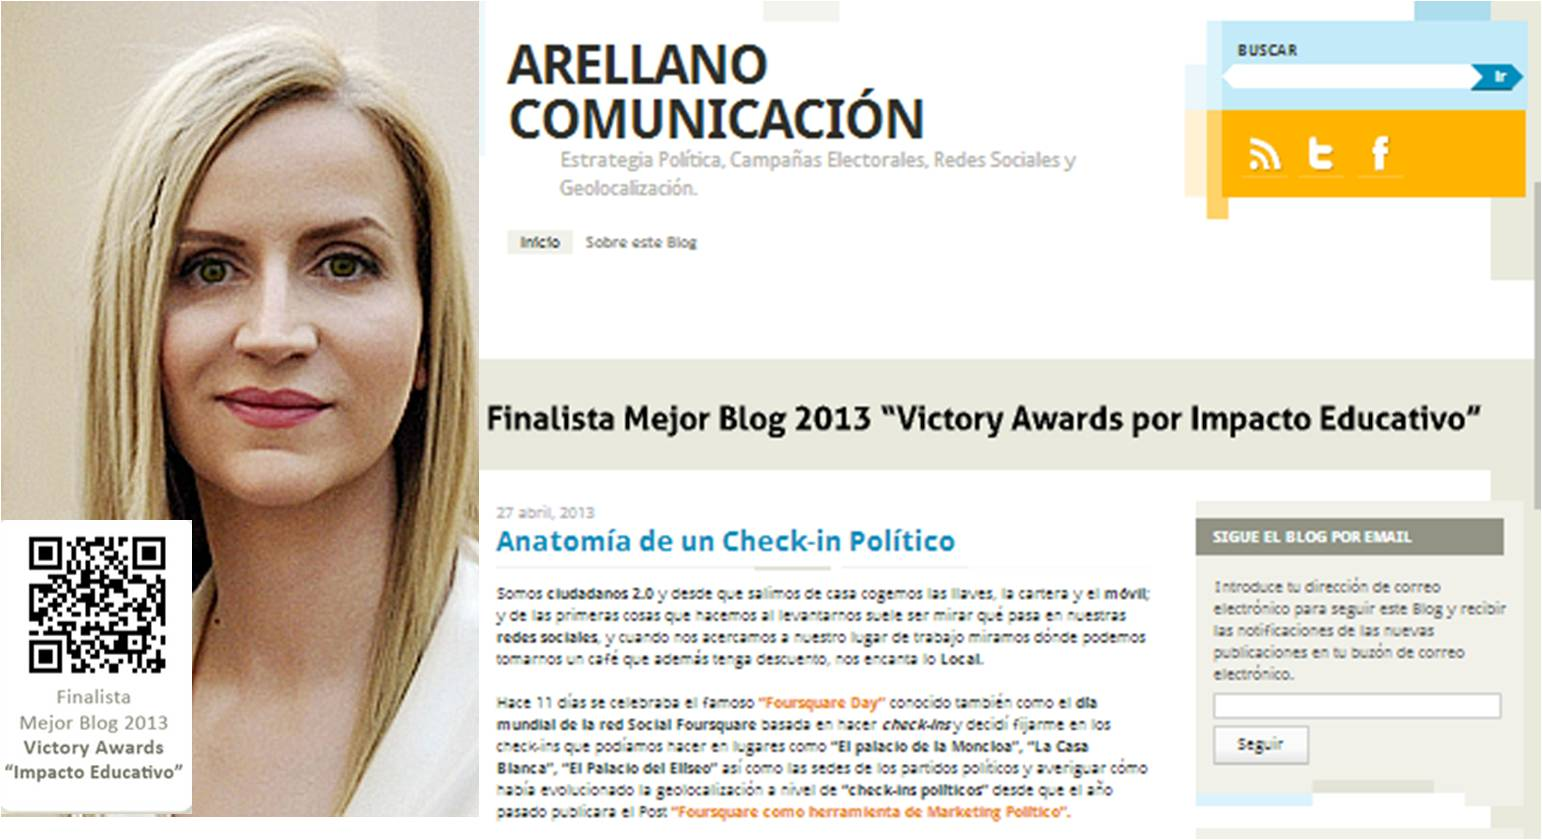 Ana Ramirez Arellano experta en marketing on line, social media y marketing politico. Esmeralda Diaz-Aroca